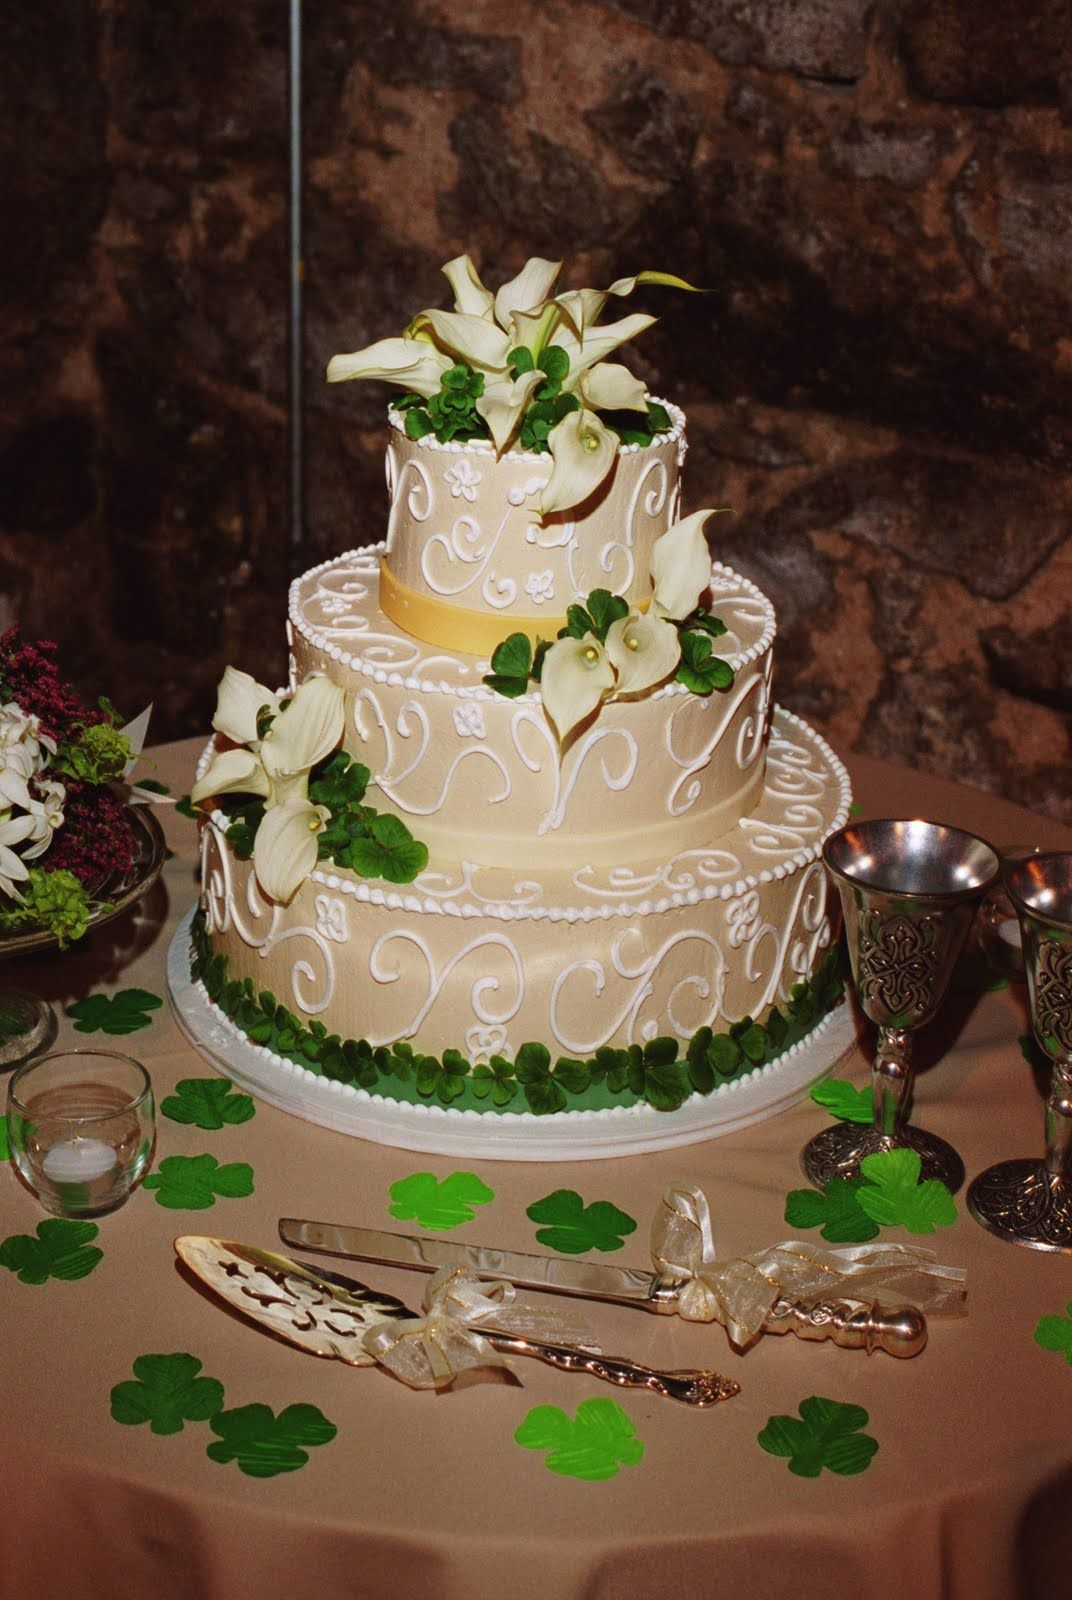 Four Leaf Clover Cake Use Purple Flowers Instead Of The